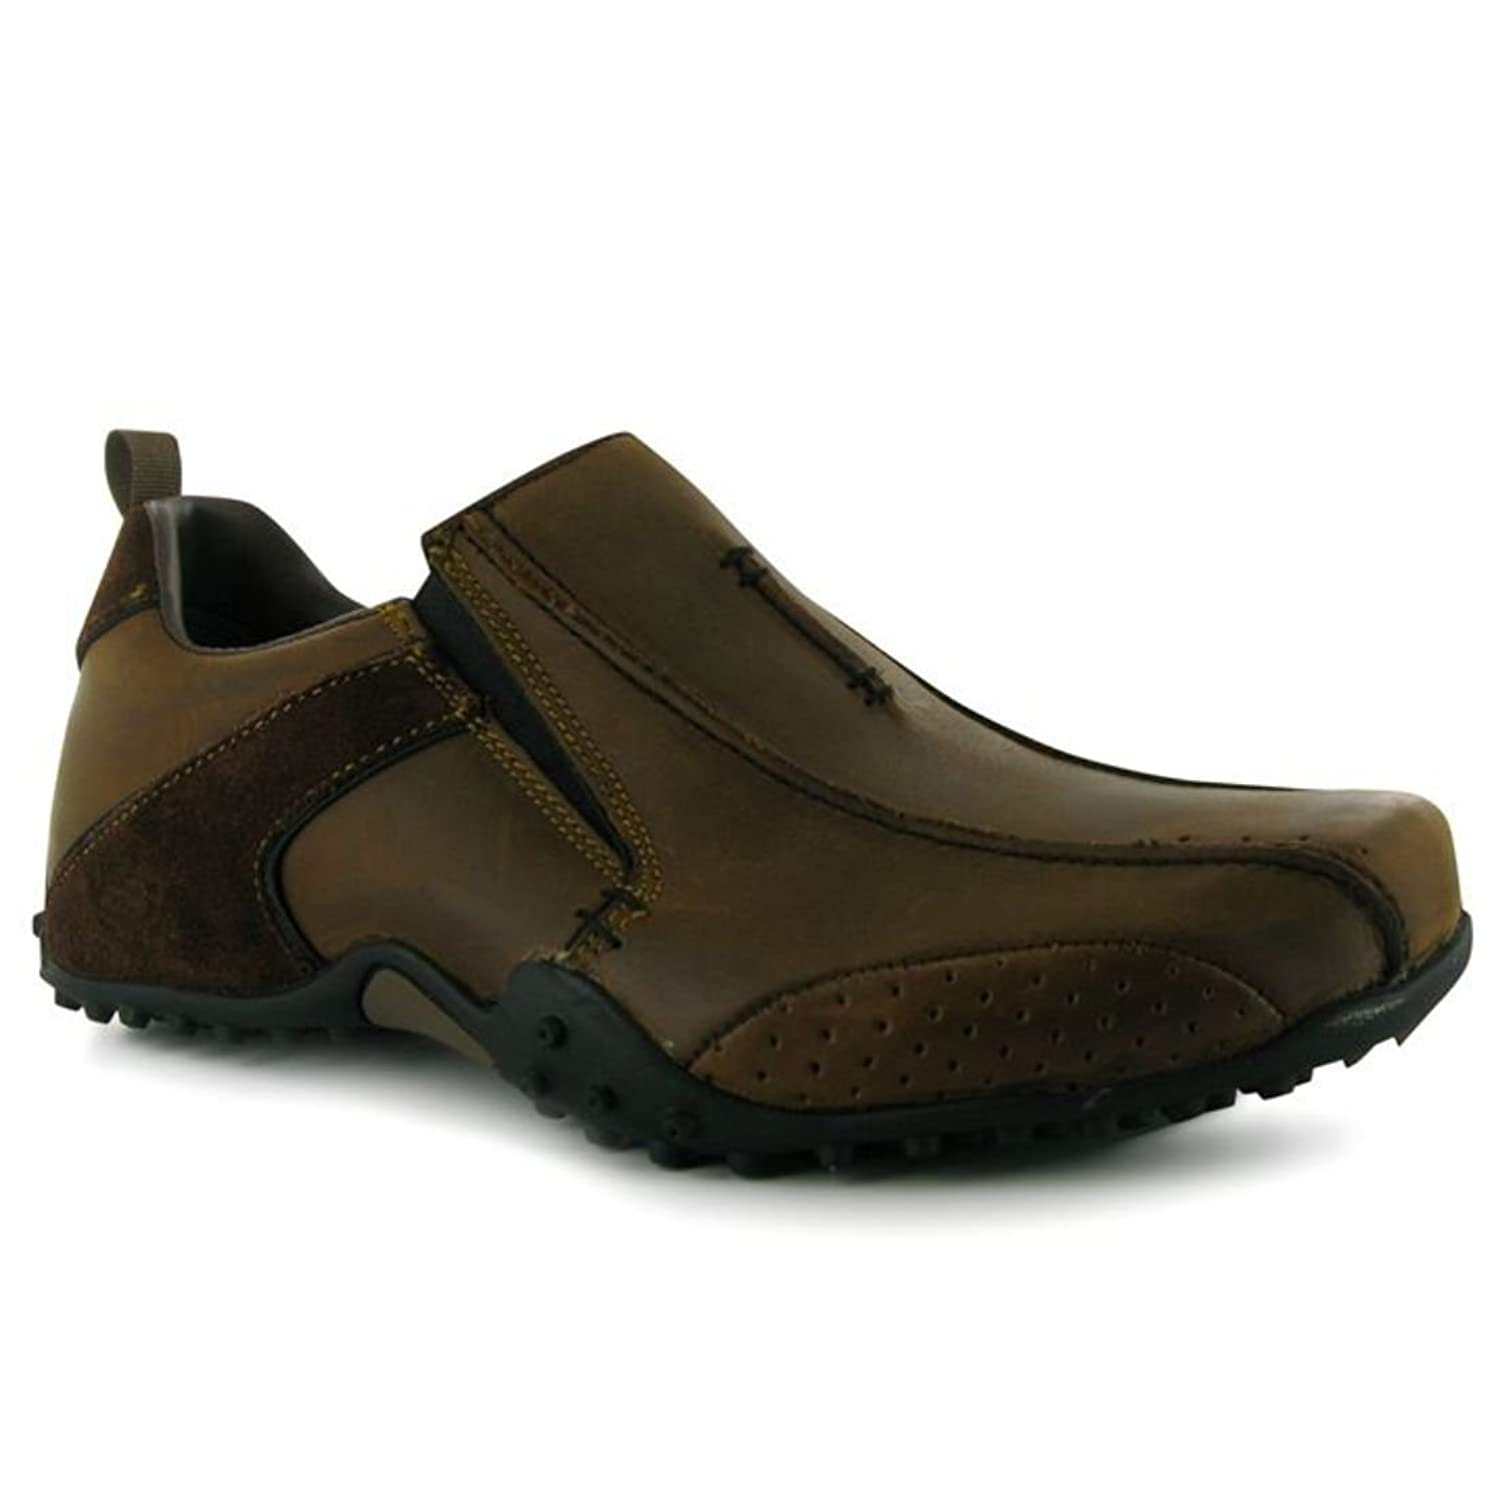 Skechers Mens Gents Leather Textile Fashion Slip on Urban Track Wynn Shoes  New: Amazon.co.uk: Shoes & Bags